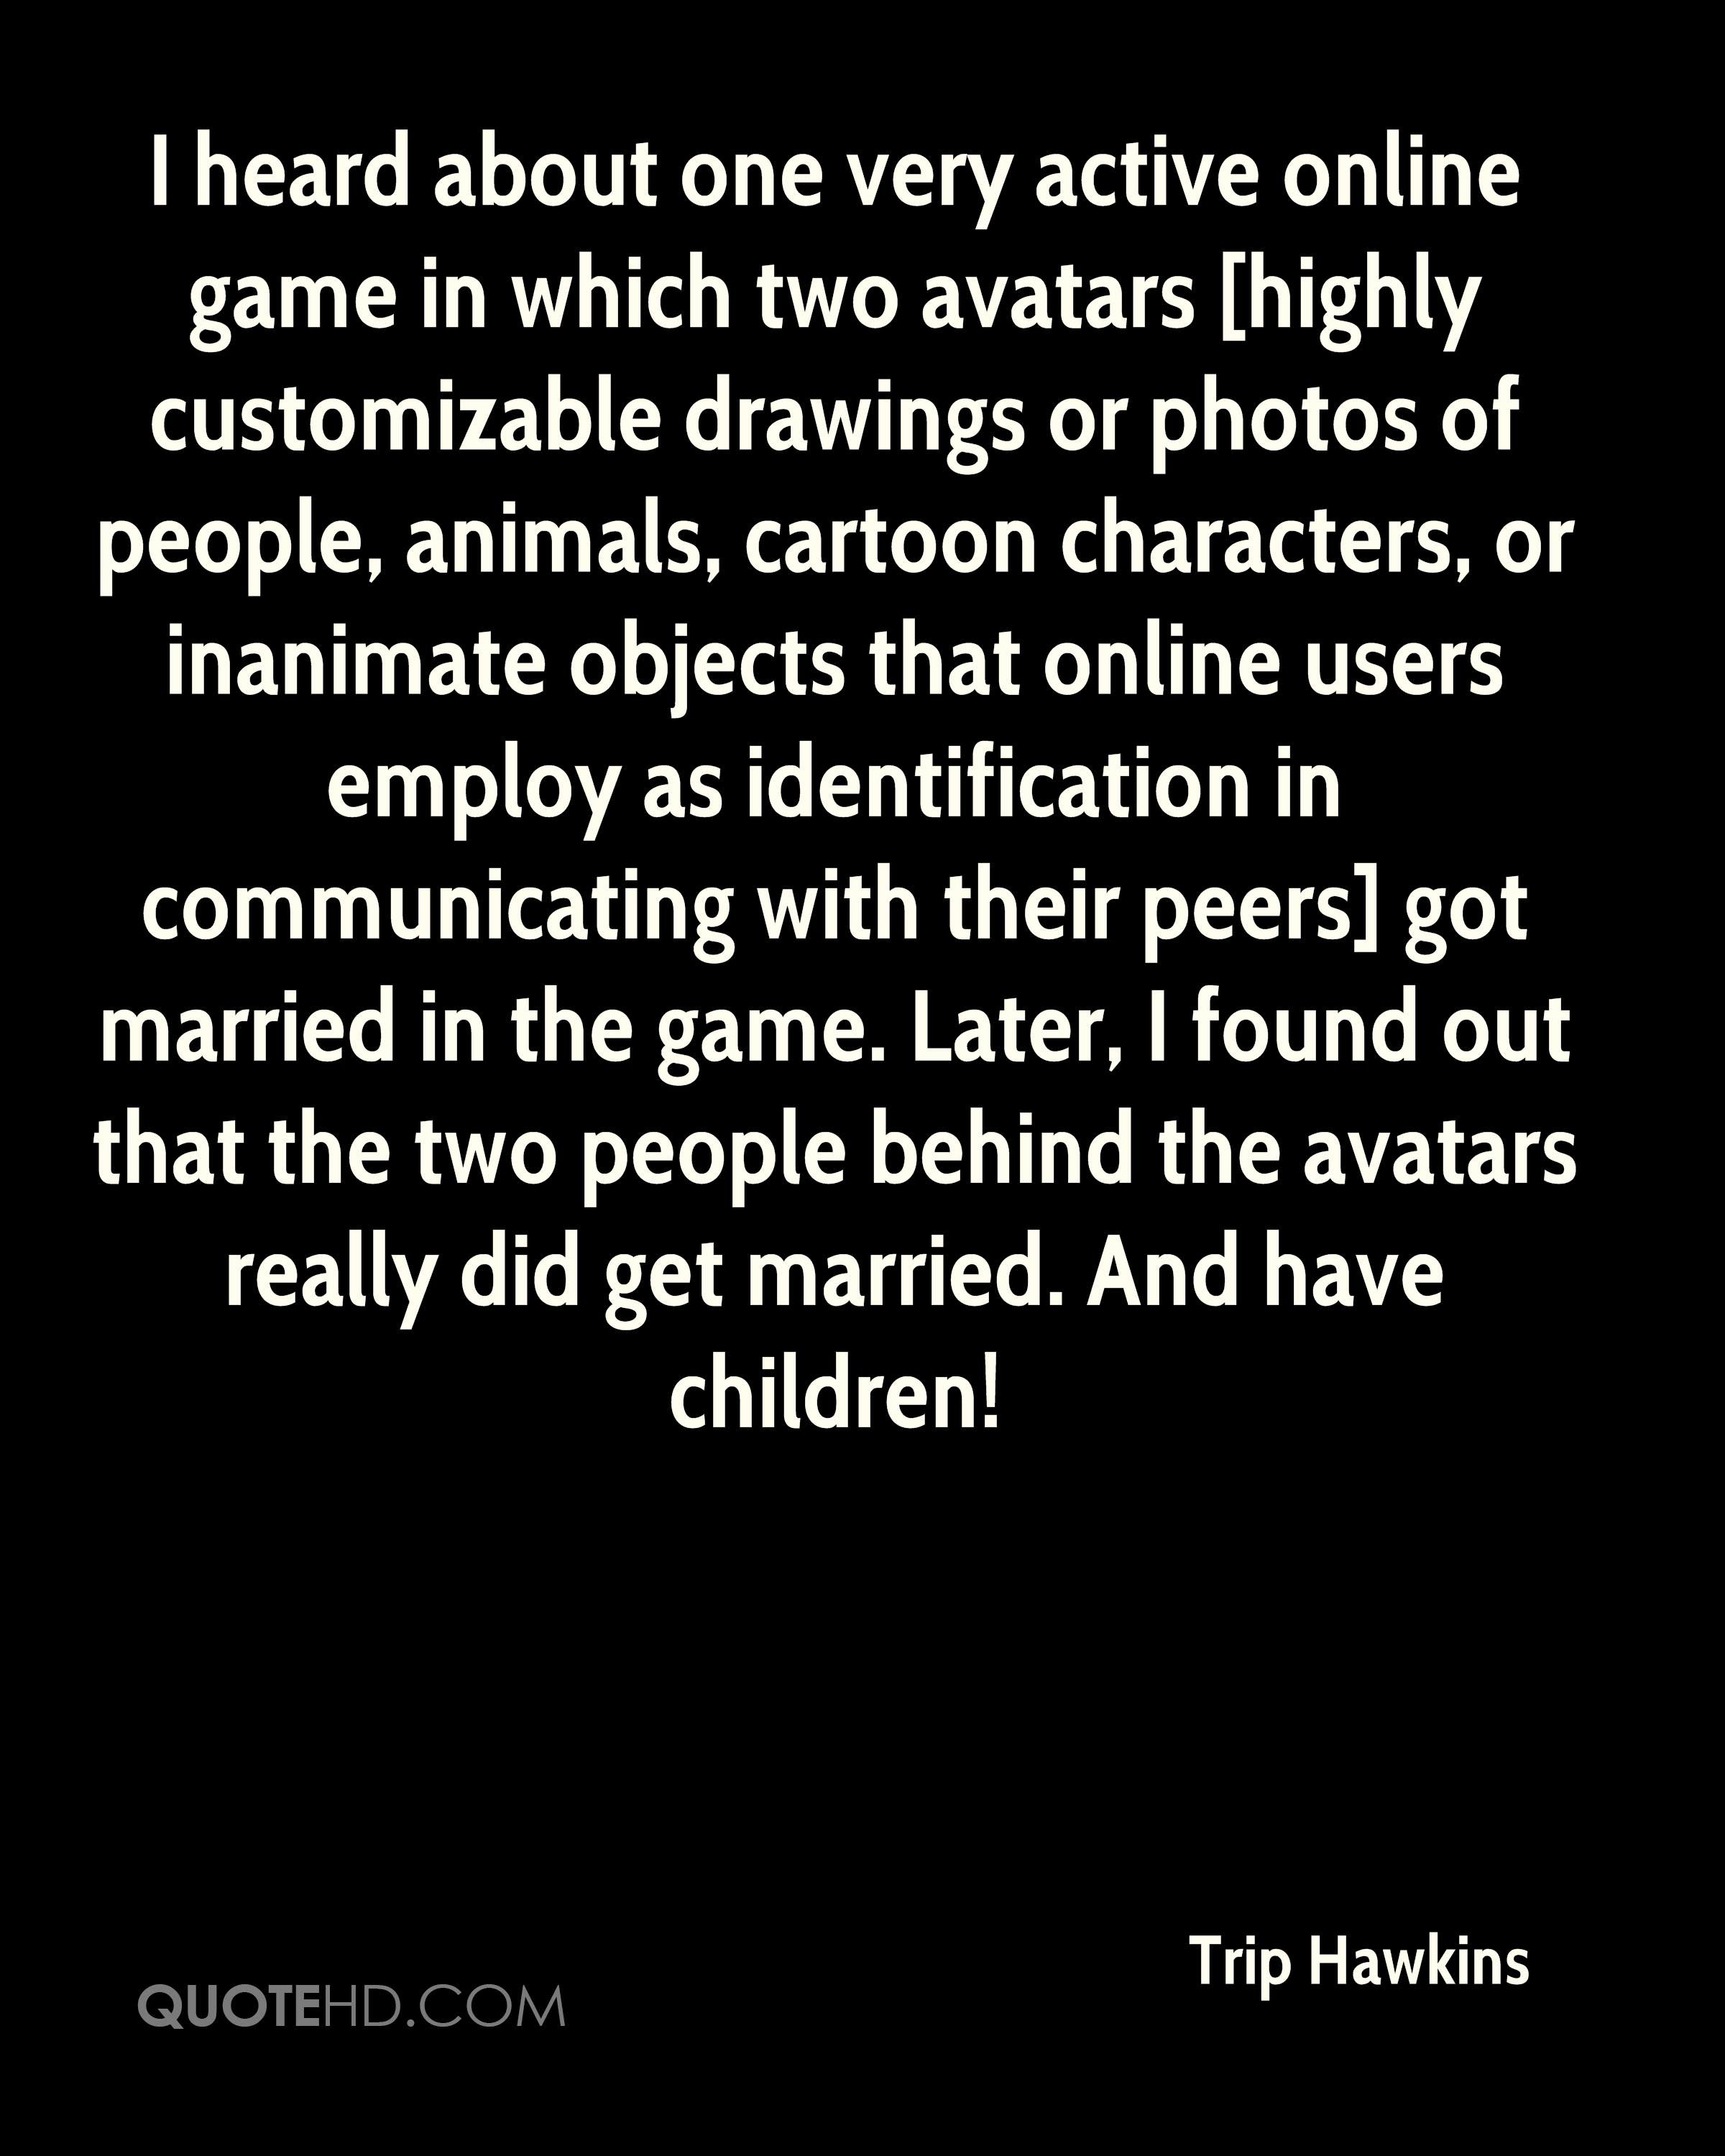 Trip Hawkins Marriage Quotes Quotehd